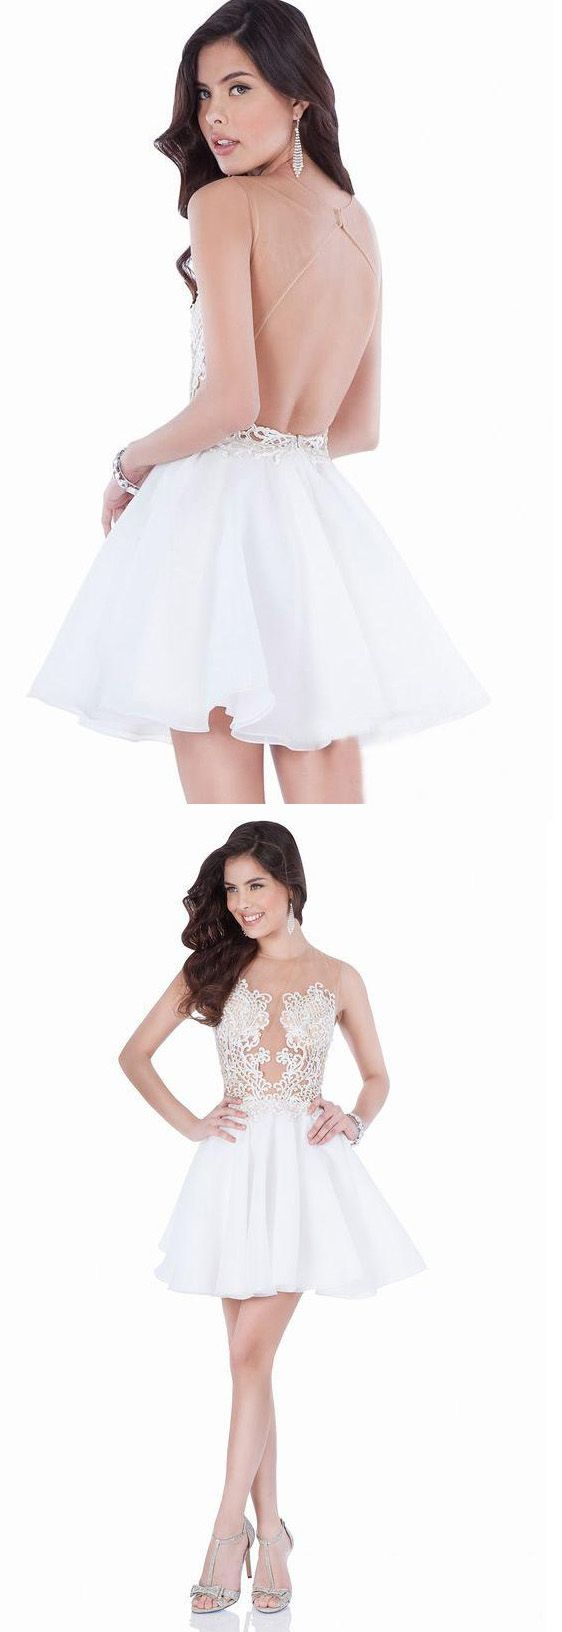 Short homecoming prom dress popular white homecoming dresses with